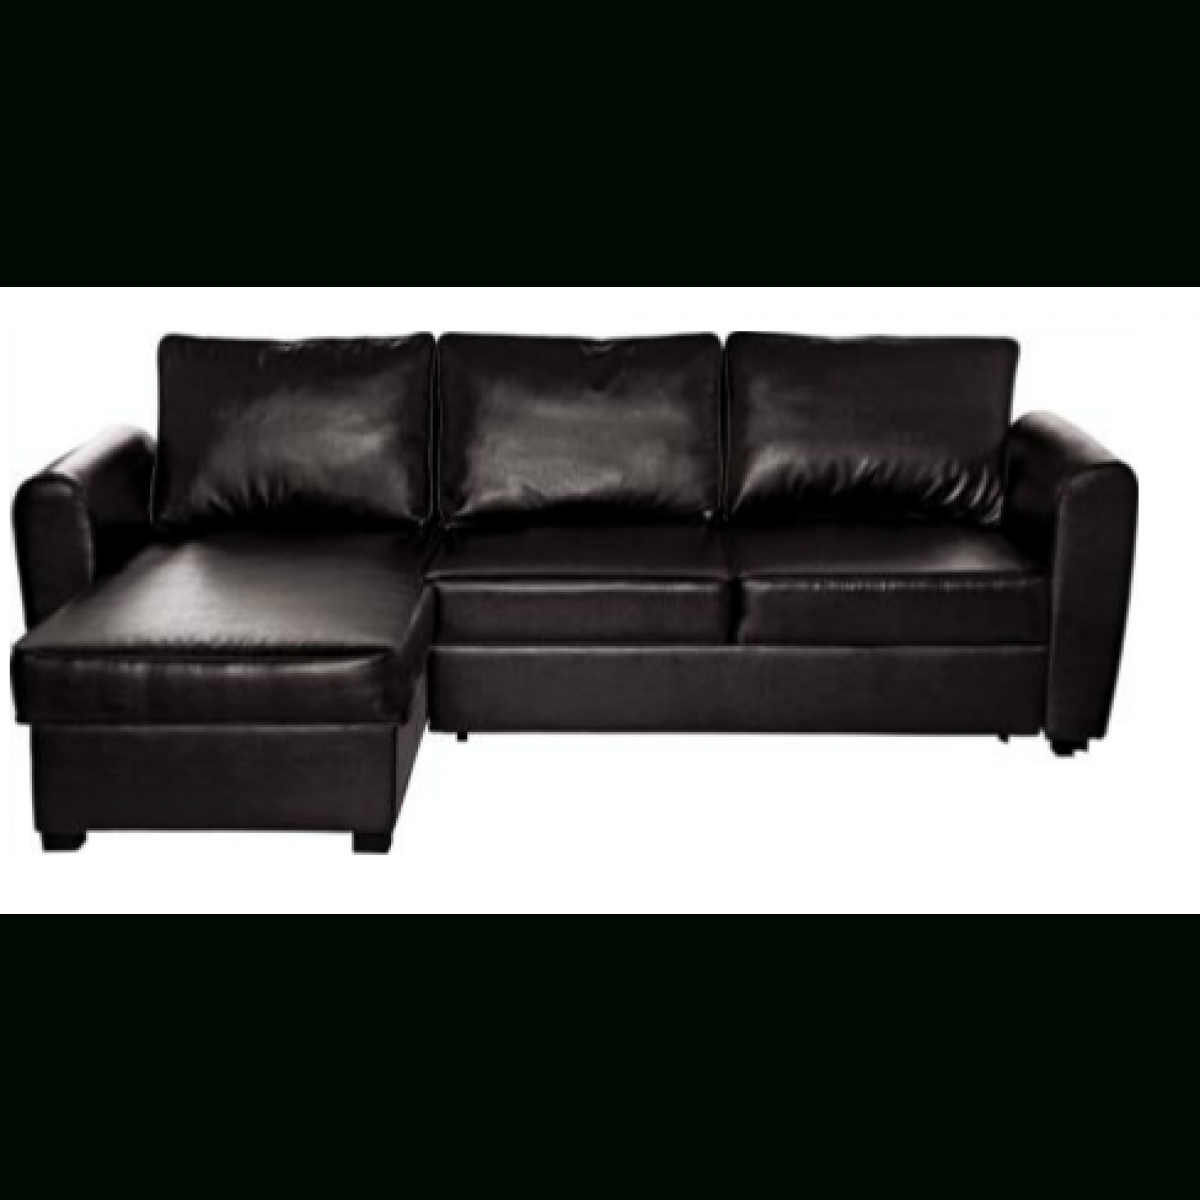 Siena Leather Effect Corner Sofa Bed With Storage -Chocolate with regard to Cheap Corner Sofa Beds (Image 21 of 30)